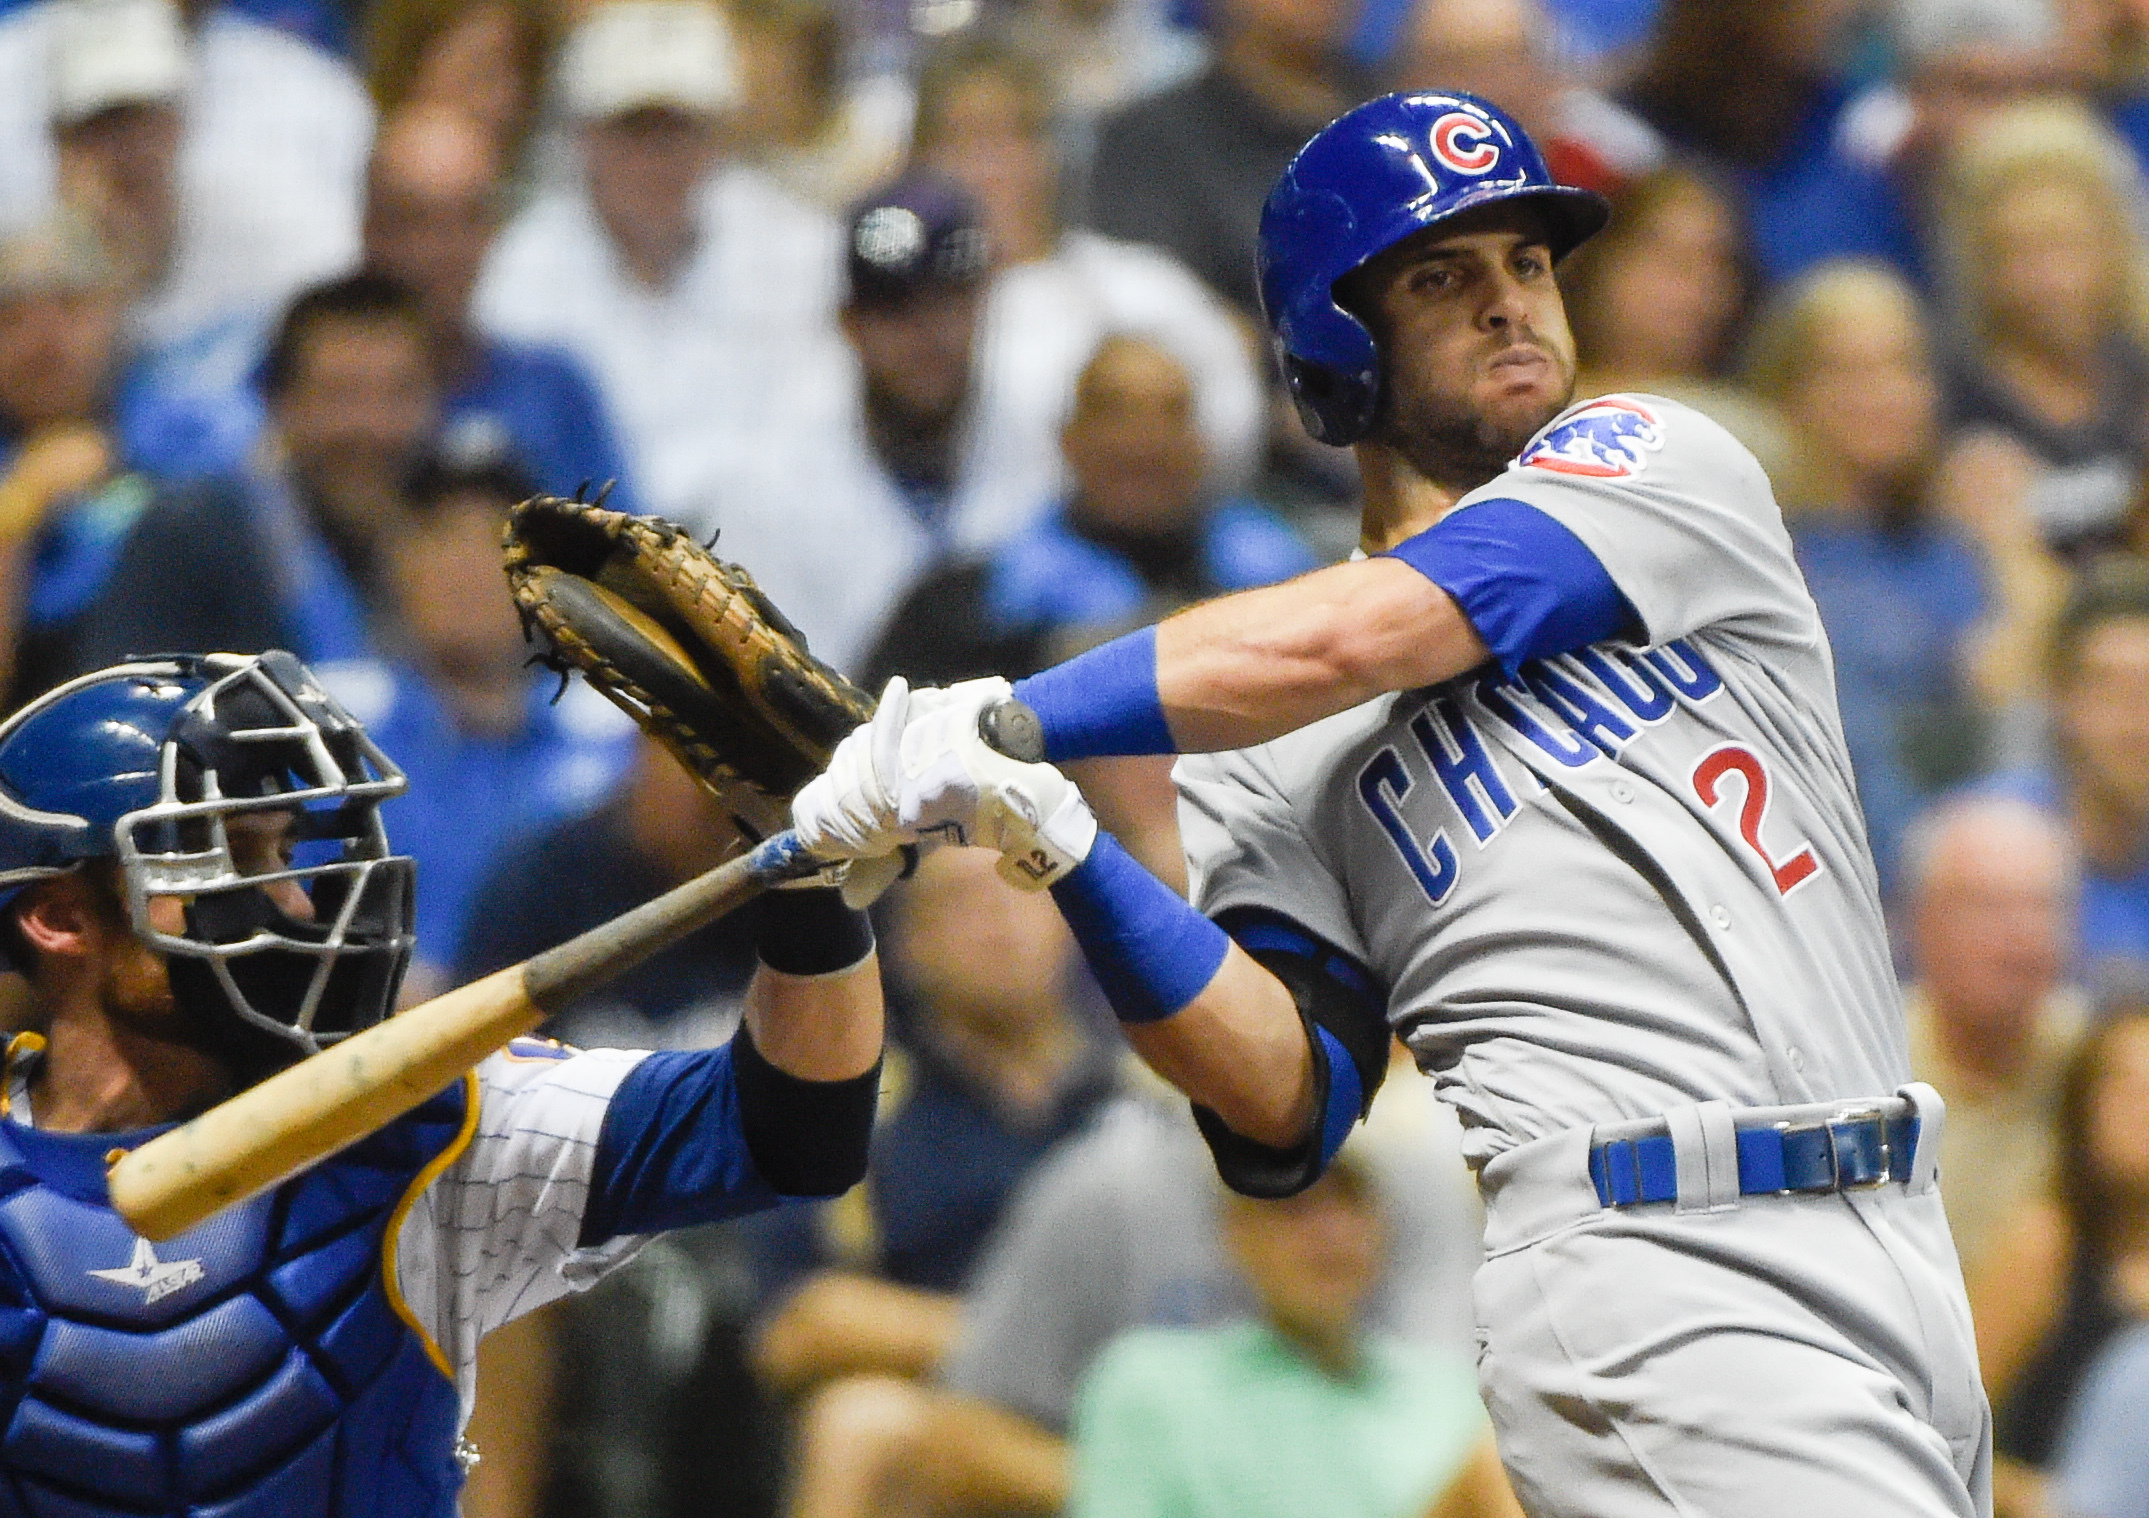 FILE - In this July 22, 2016, file photo, Chicago Cubs' Tommy La Stella bats during the eighth inning of a baseball game against the Milwaukee Brewers, in Milwaukee. Cubs infielder Tommy La Stella has refused to report to Triple-A Iowa after being optione